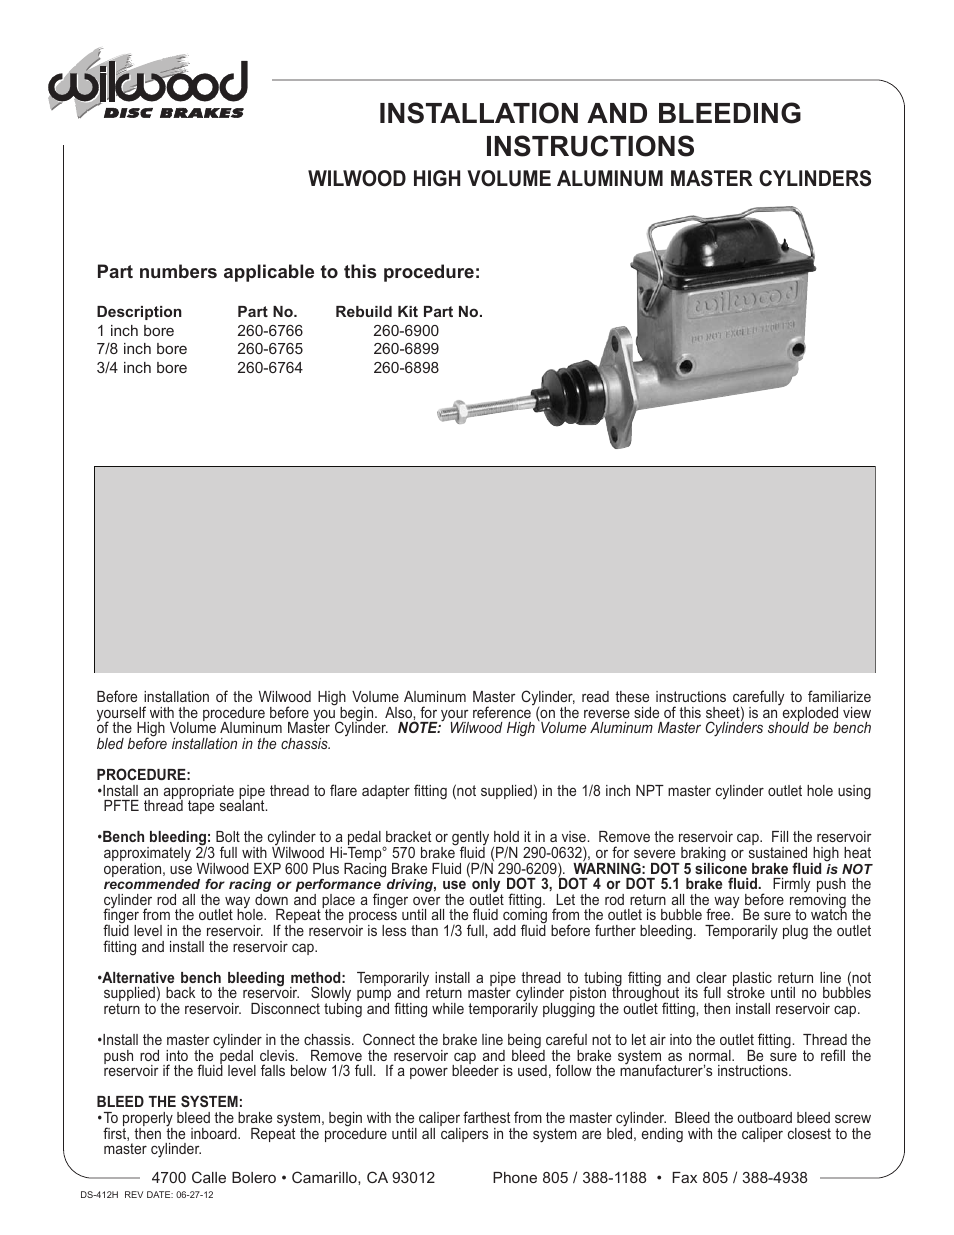 Wilwood High Volume Master Cylinder User Manual | 2 pages